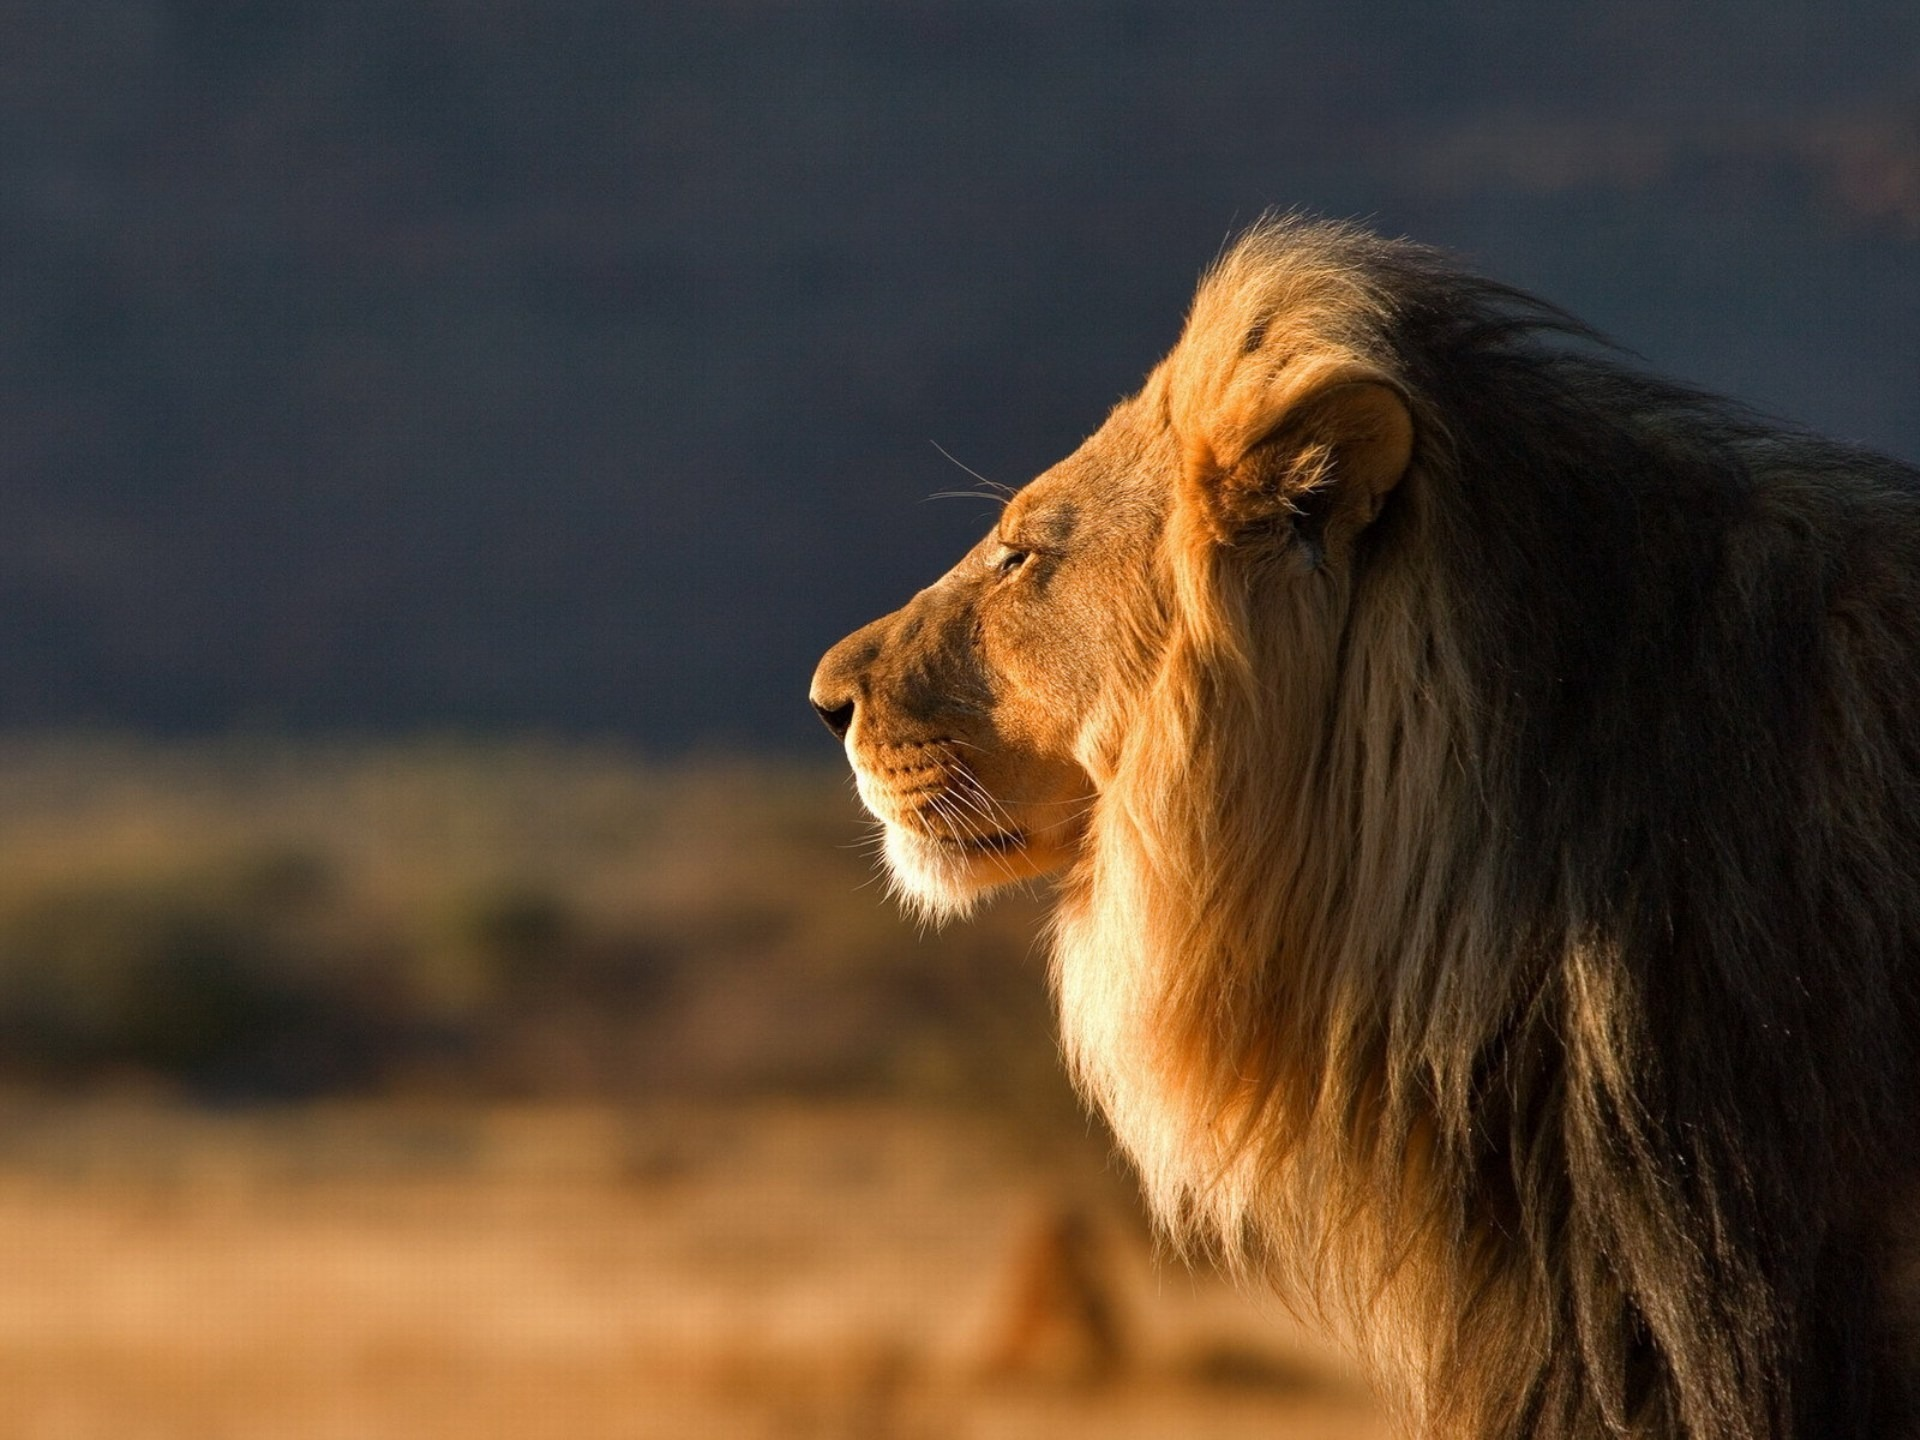 Lion Full HD Wallpaper And Background Image